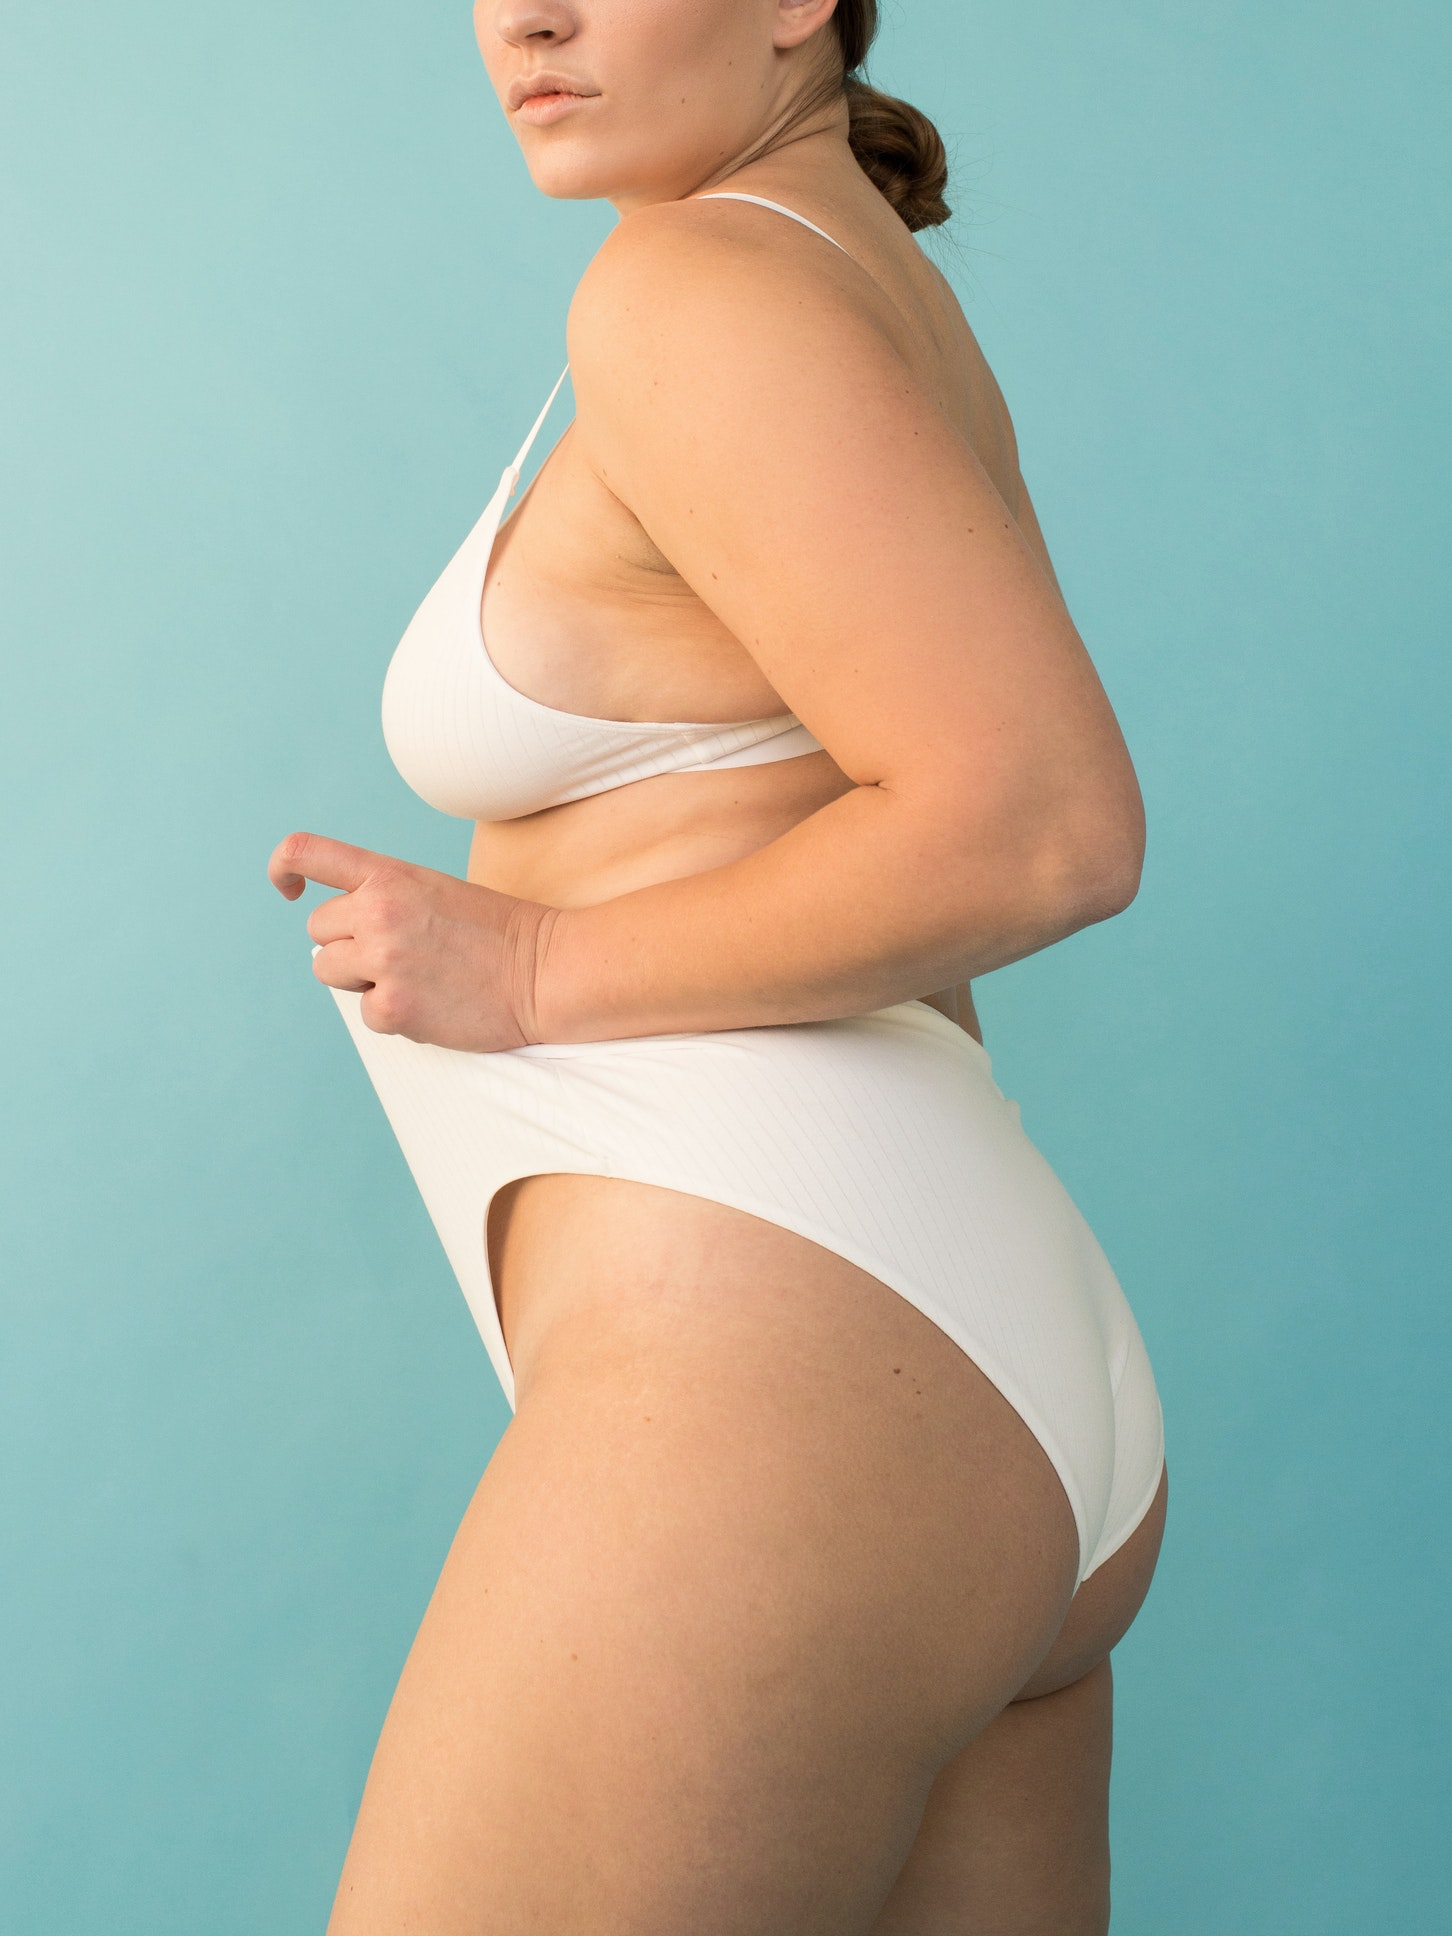 Woman wearing white underwear